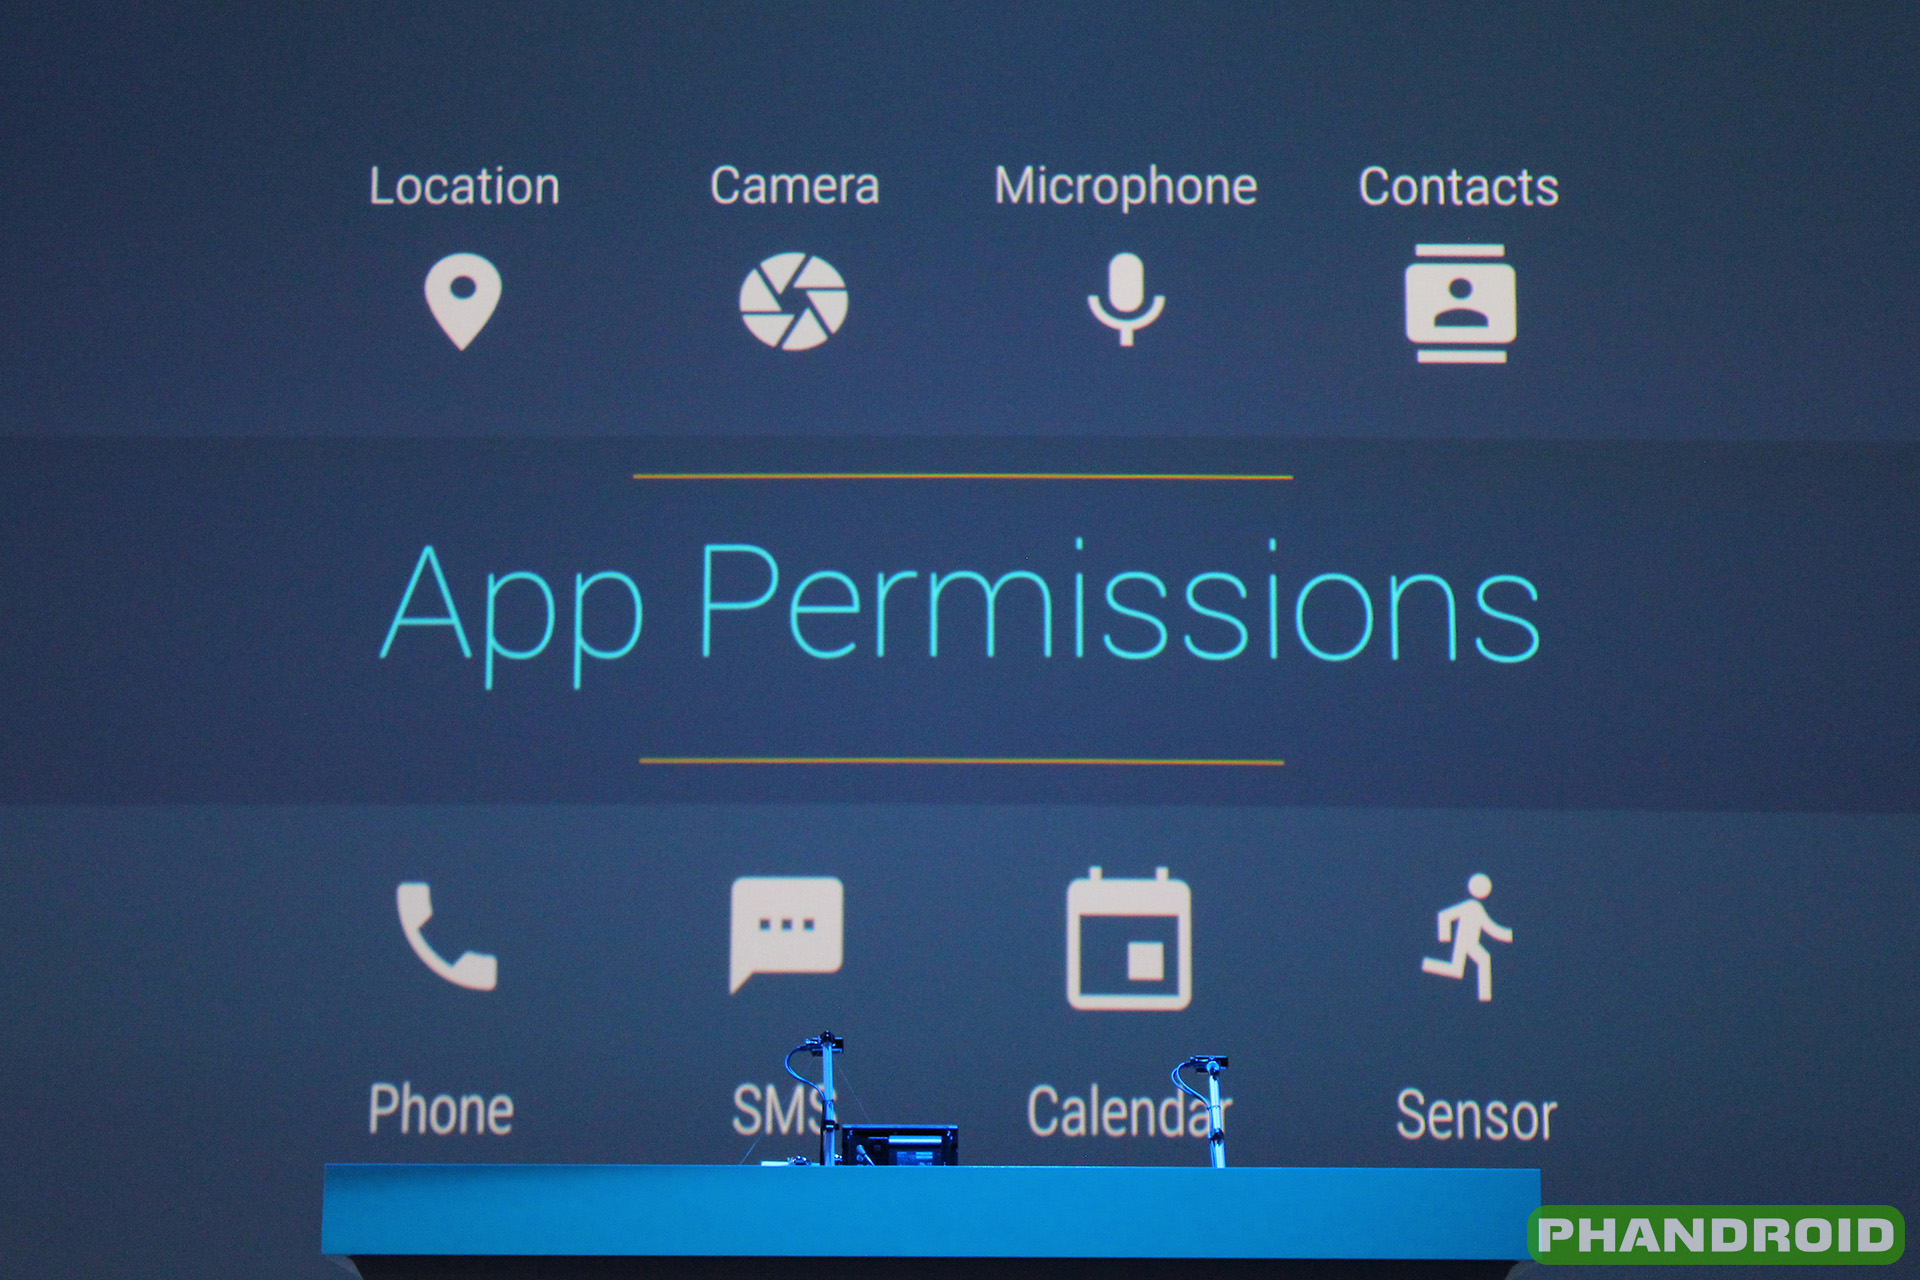 Apps in Android Marshmallow only ask permission for things